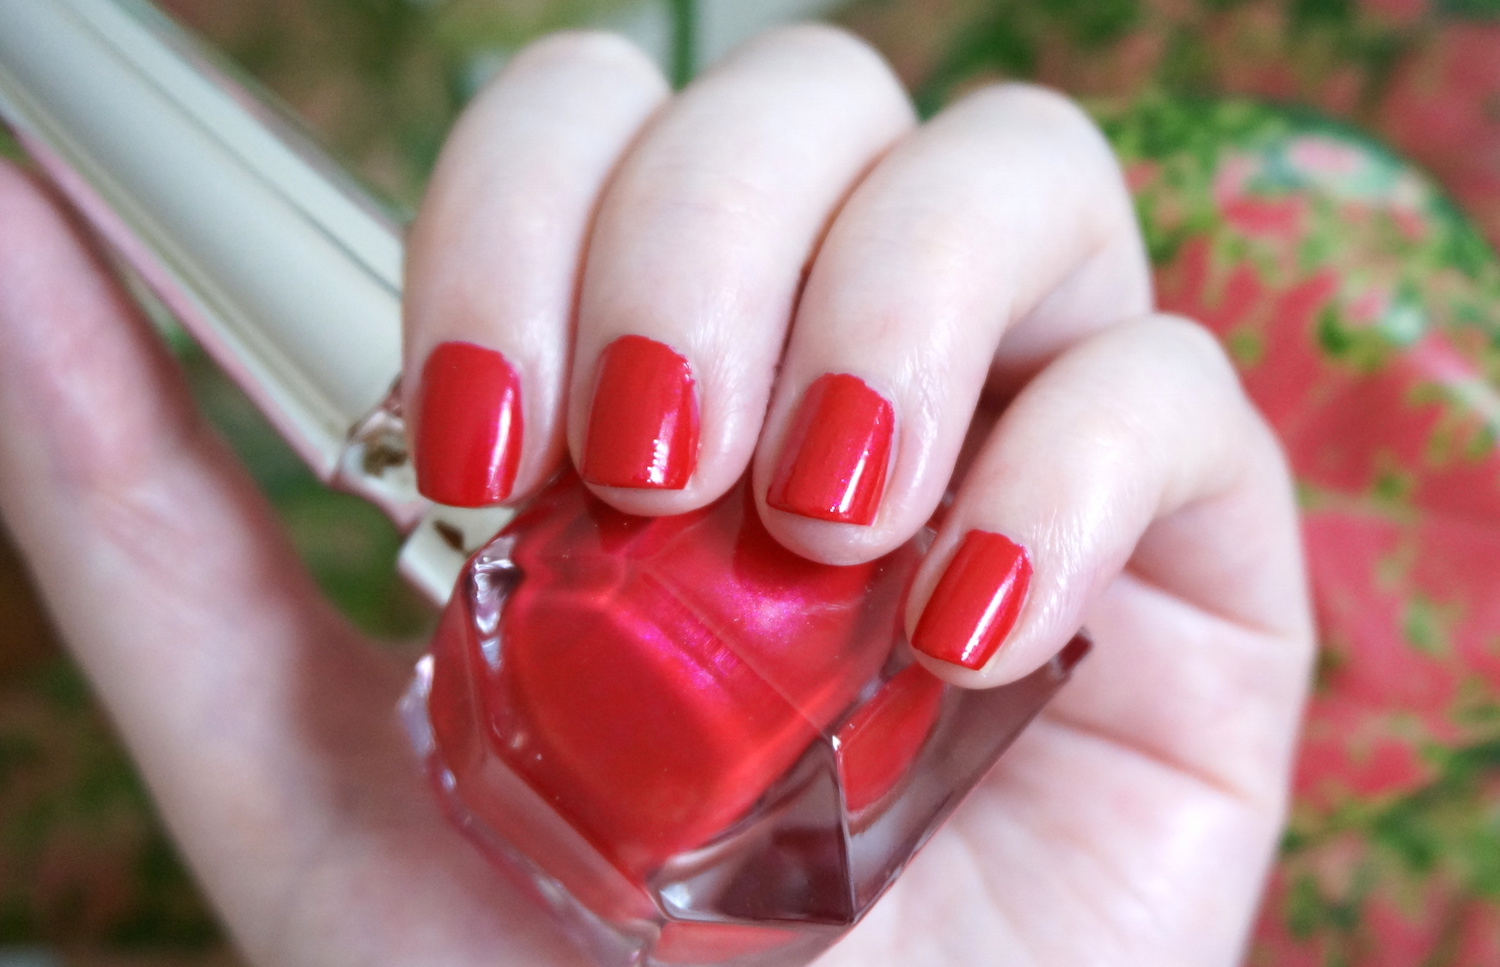 069c537b57b9 Christian Louboutin Jazz Doll nail polish review